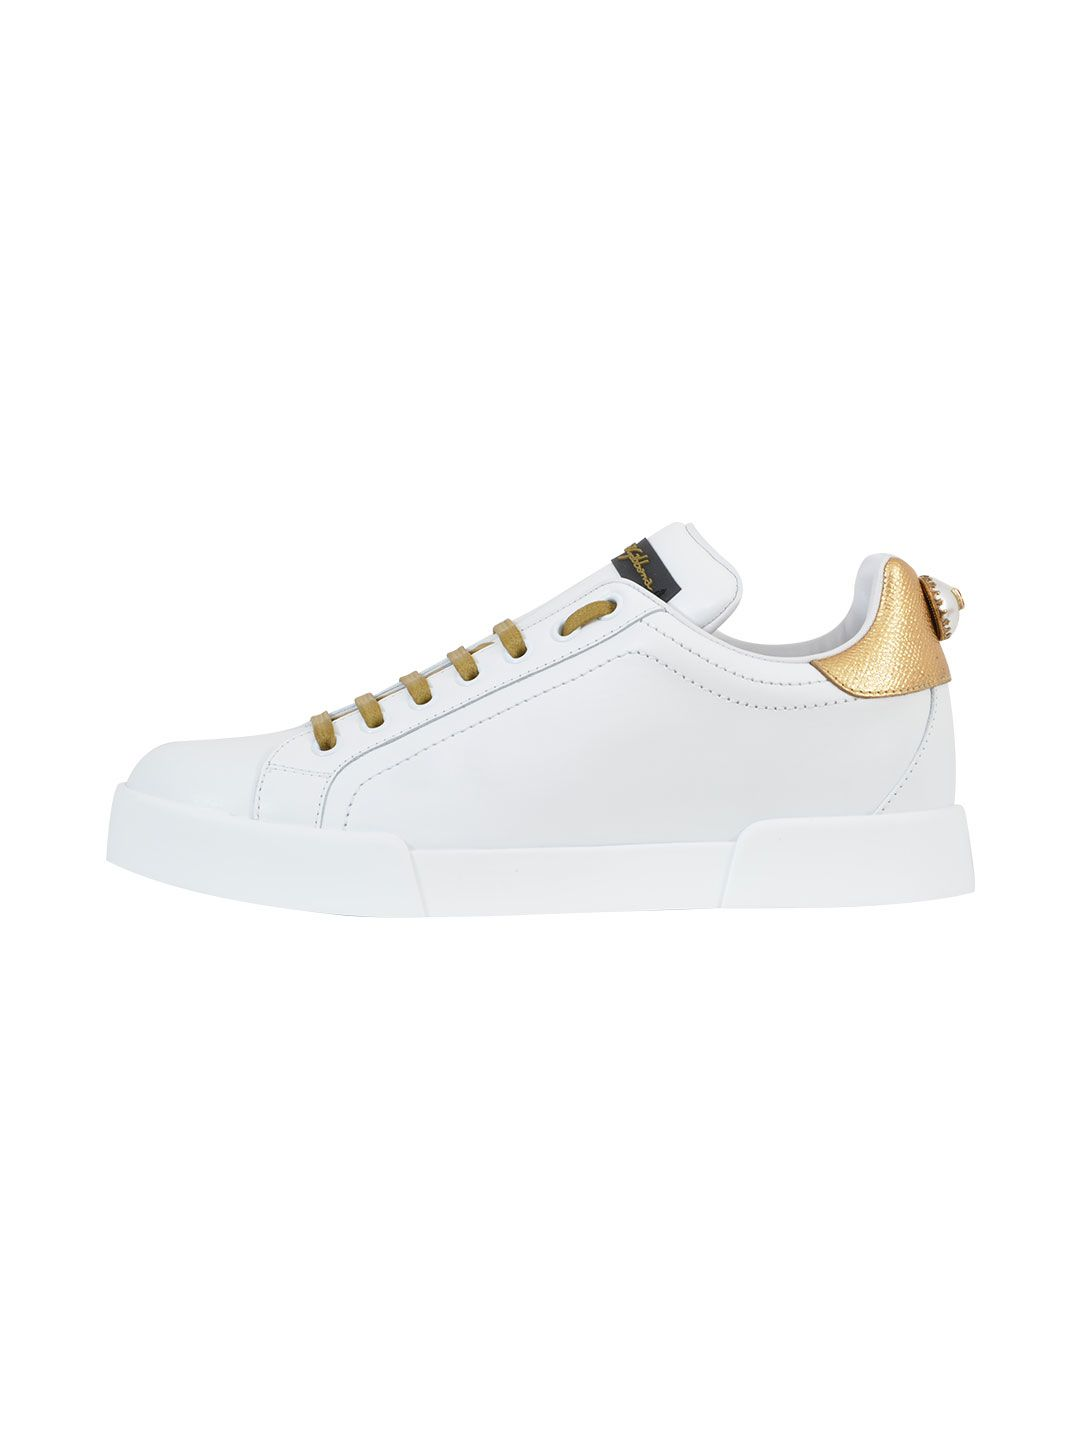 Dolce & Gabbana Sneaker With Pearl